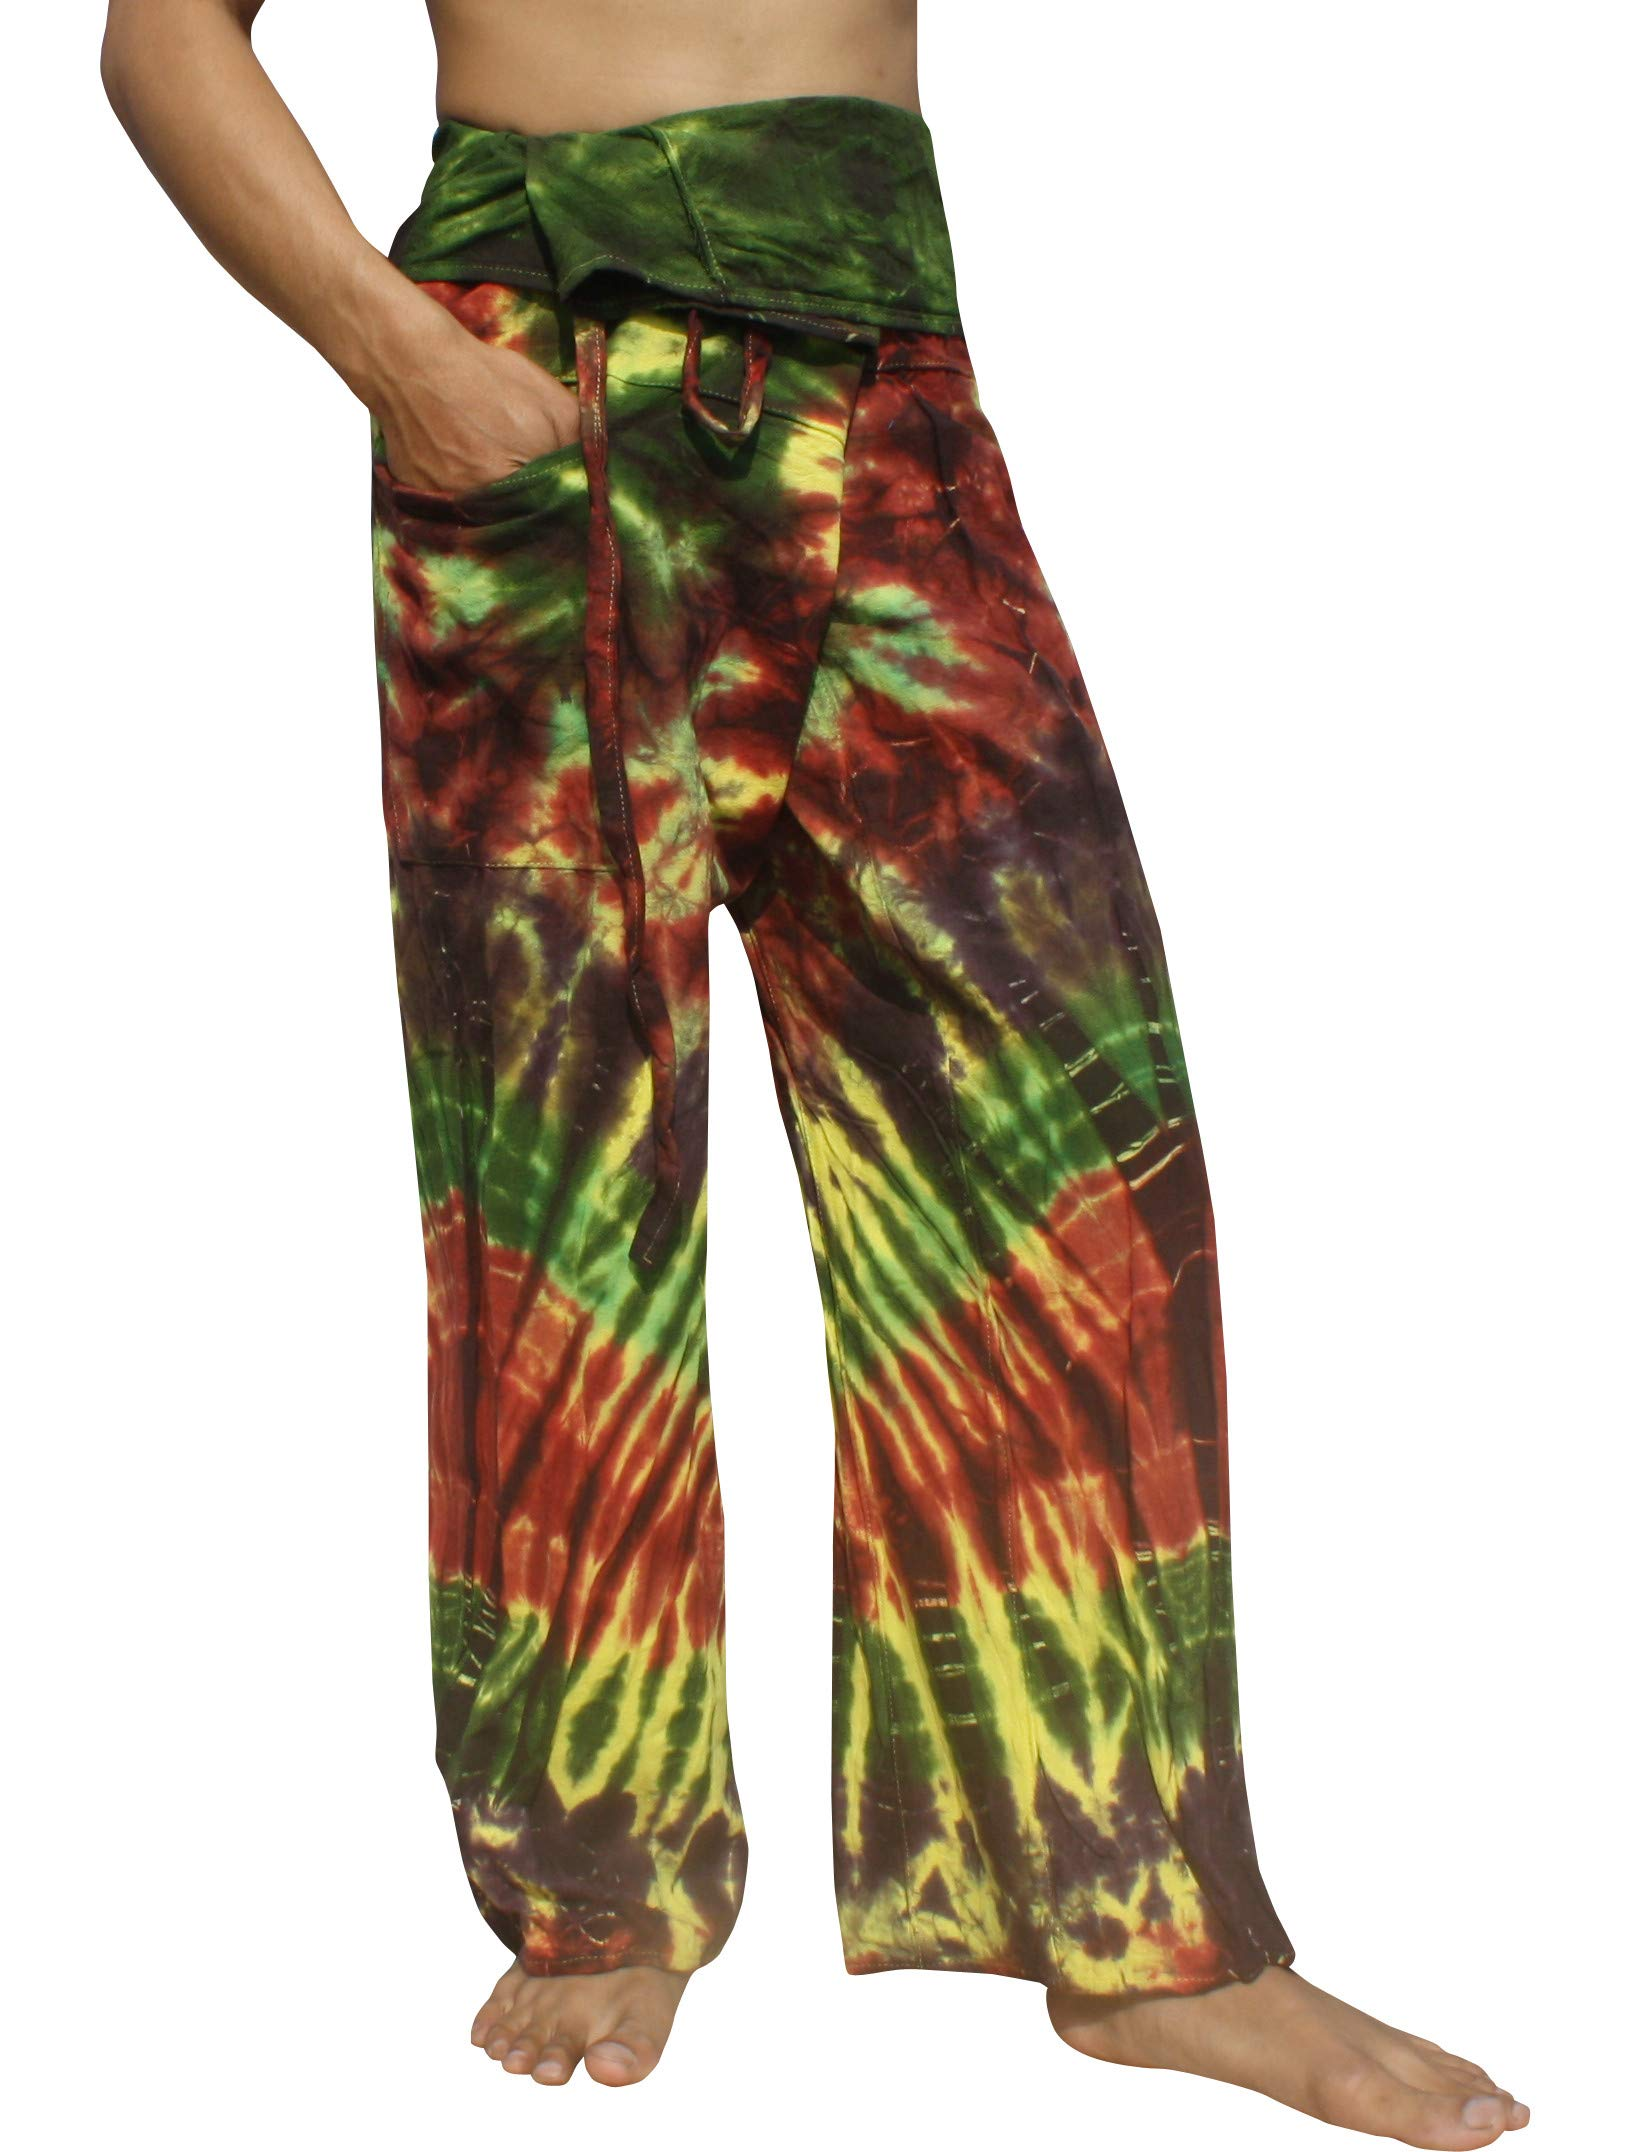 RaanPahMuang Thick Muang Cotton Thai Fishermans Pants Vibrant TieDyed Tie Dye, Small, Multi Green by Raan Pah Muang